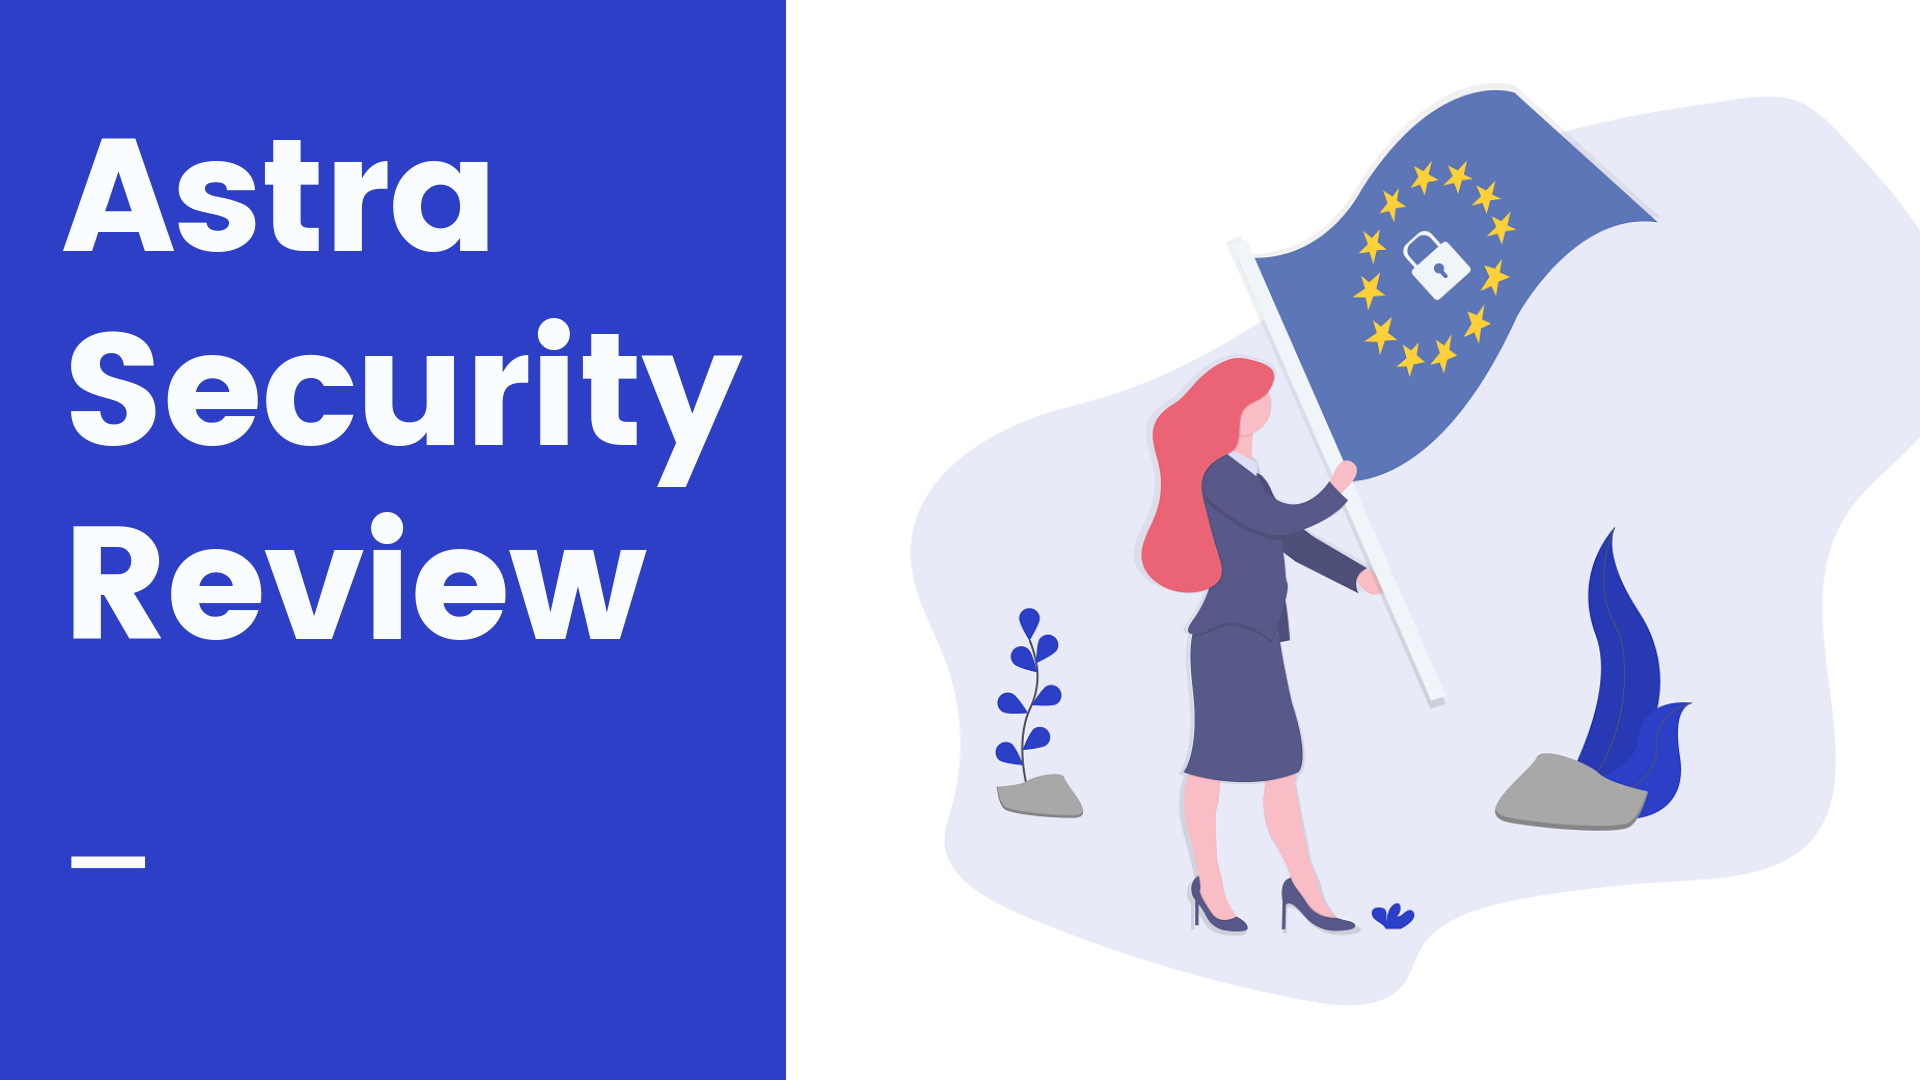 Astra Security Suite Review - Design and Logo